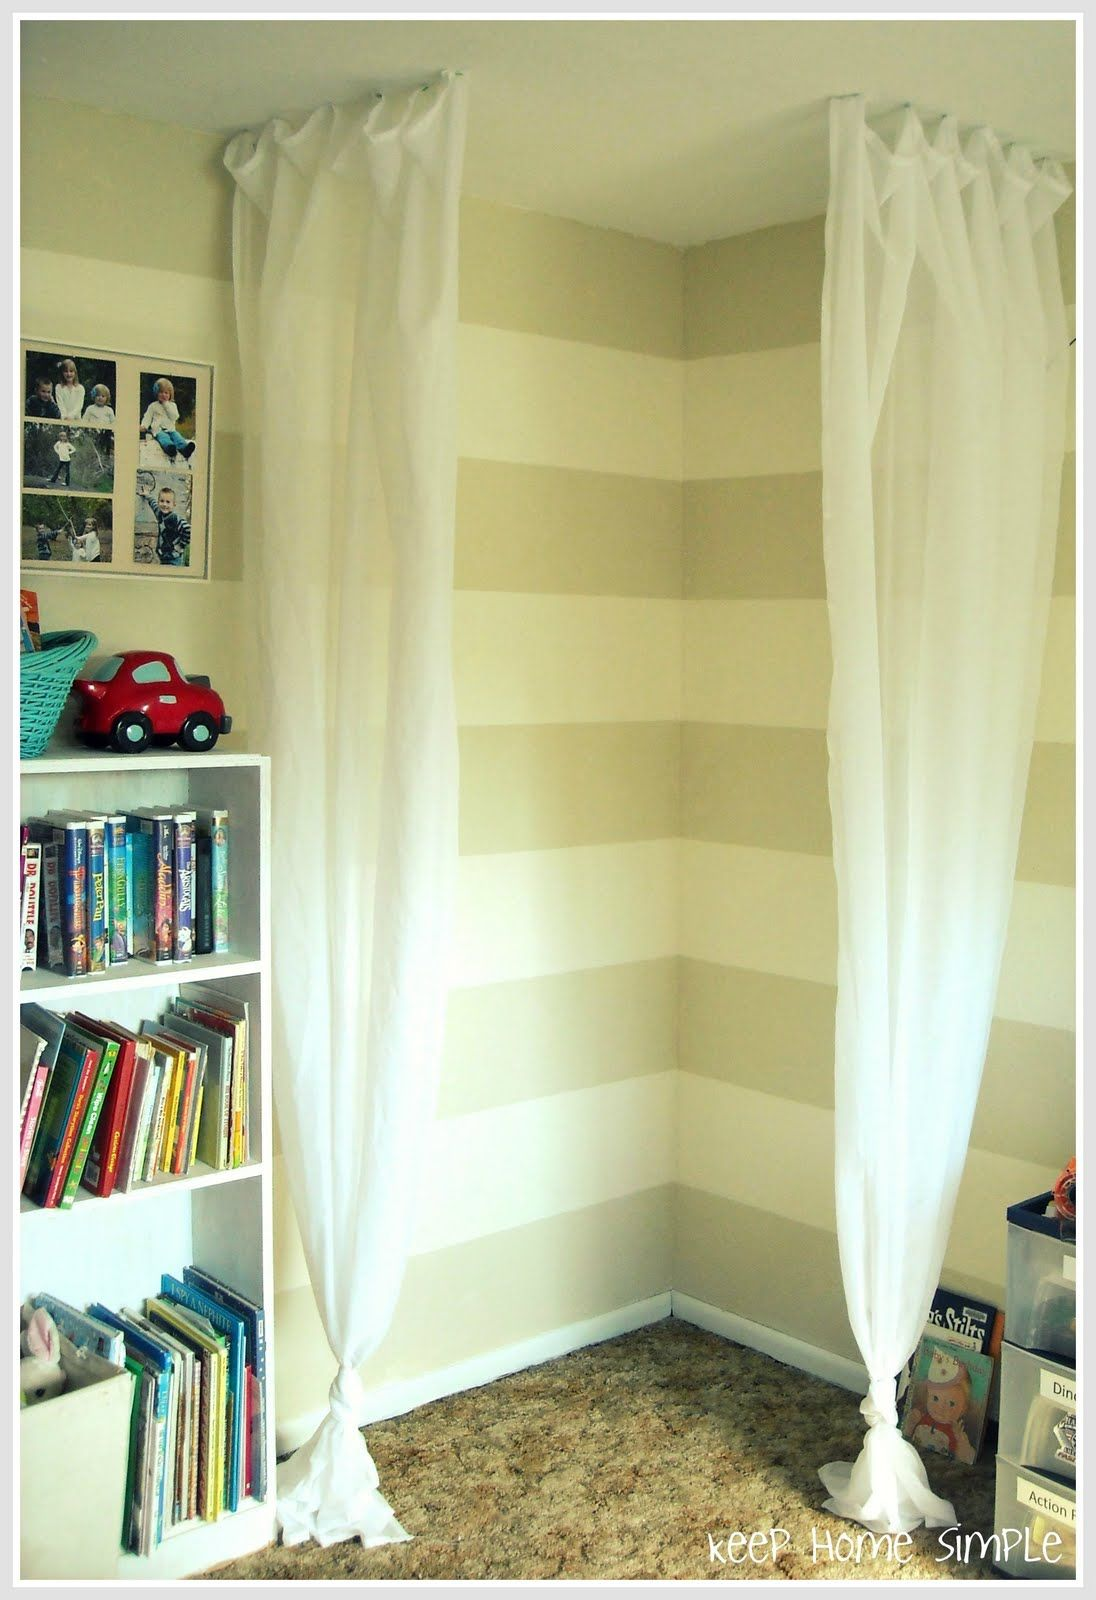 Keep Home Simple: Simple Reading Nook | Interior Design and ...